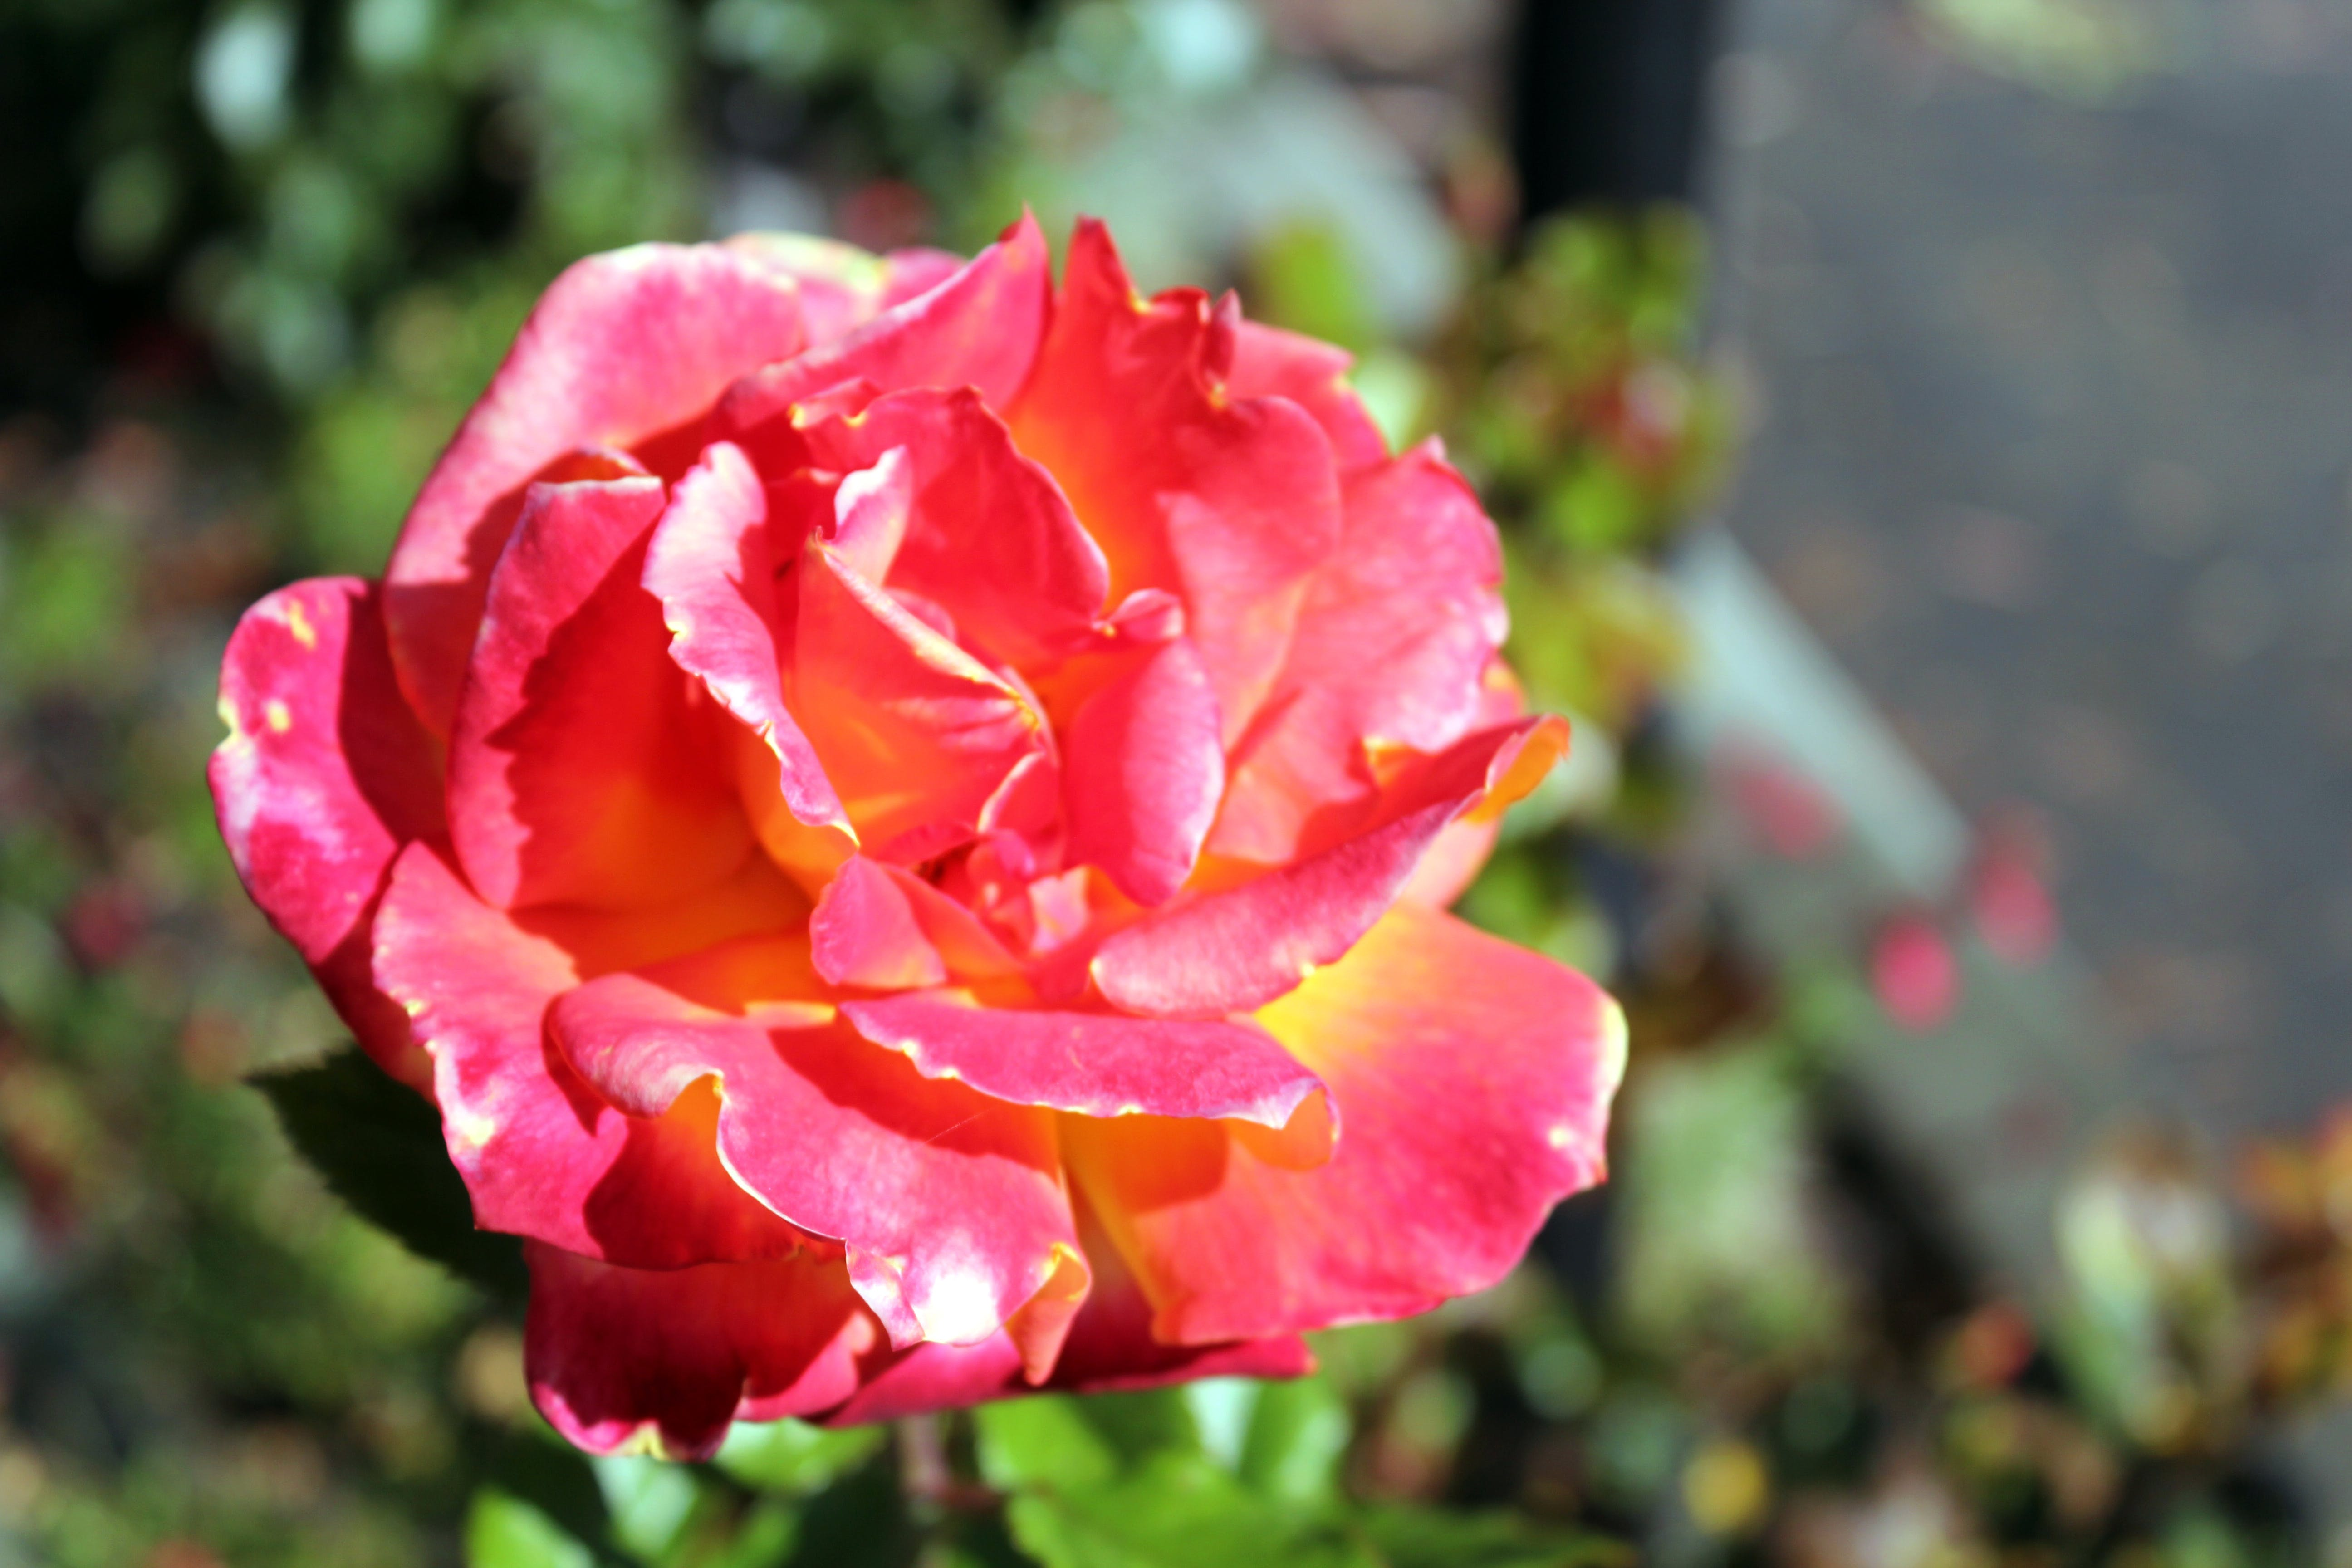 Free stock photo of Red Rose